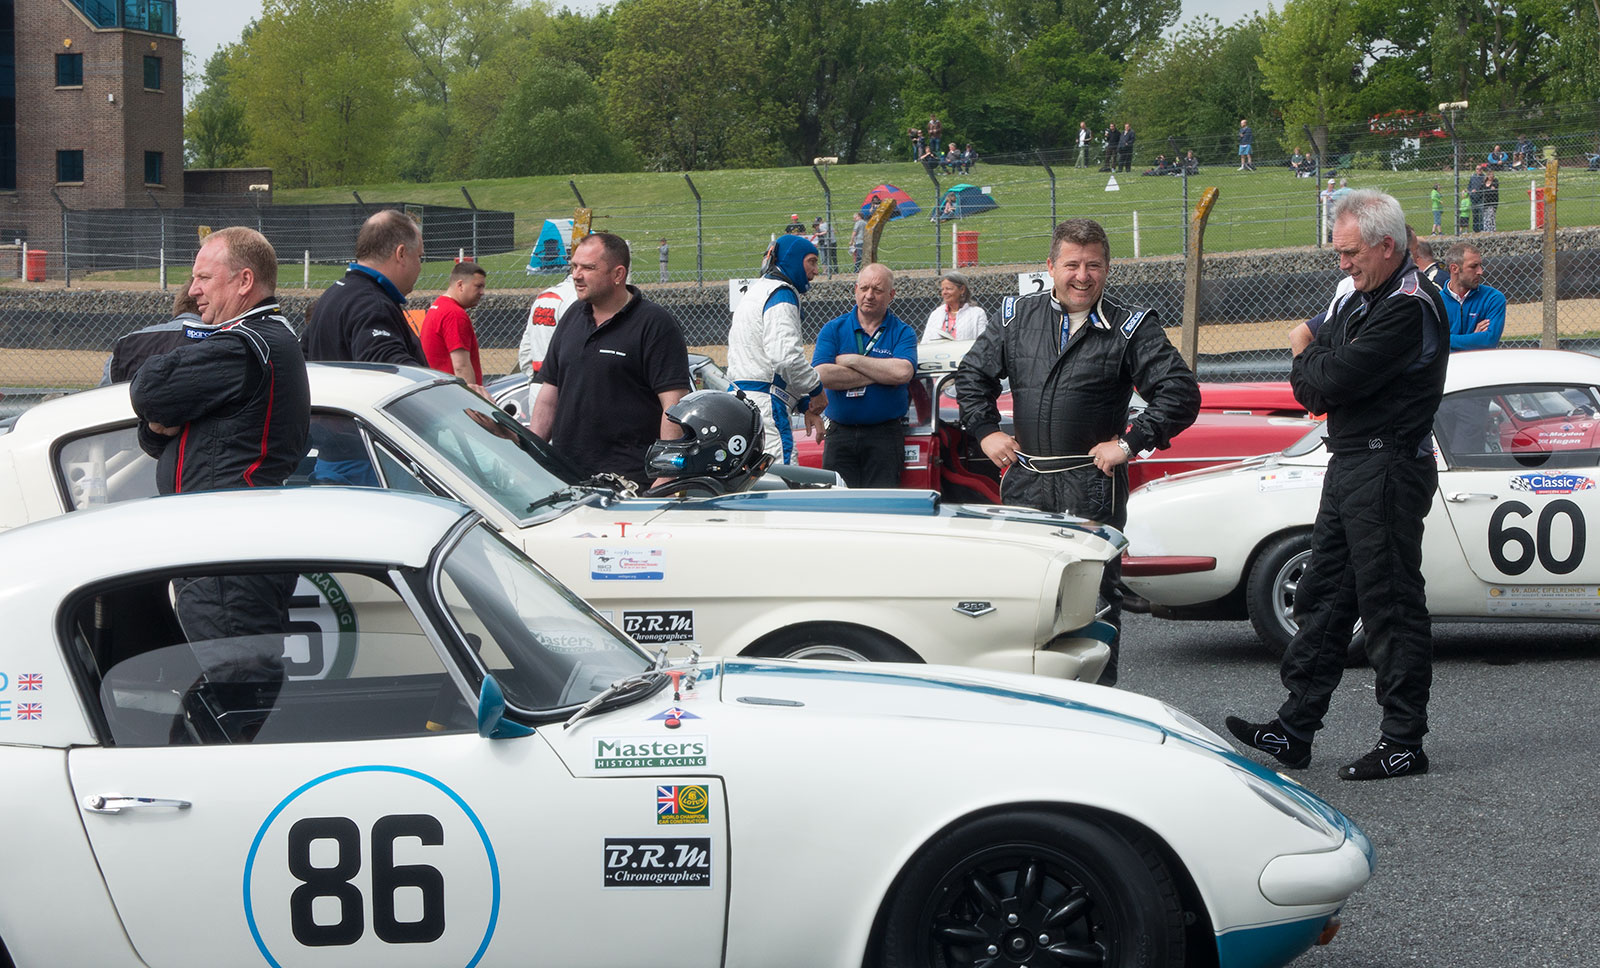 Masters Historic racing cars at Brands Hatch, 2015